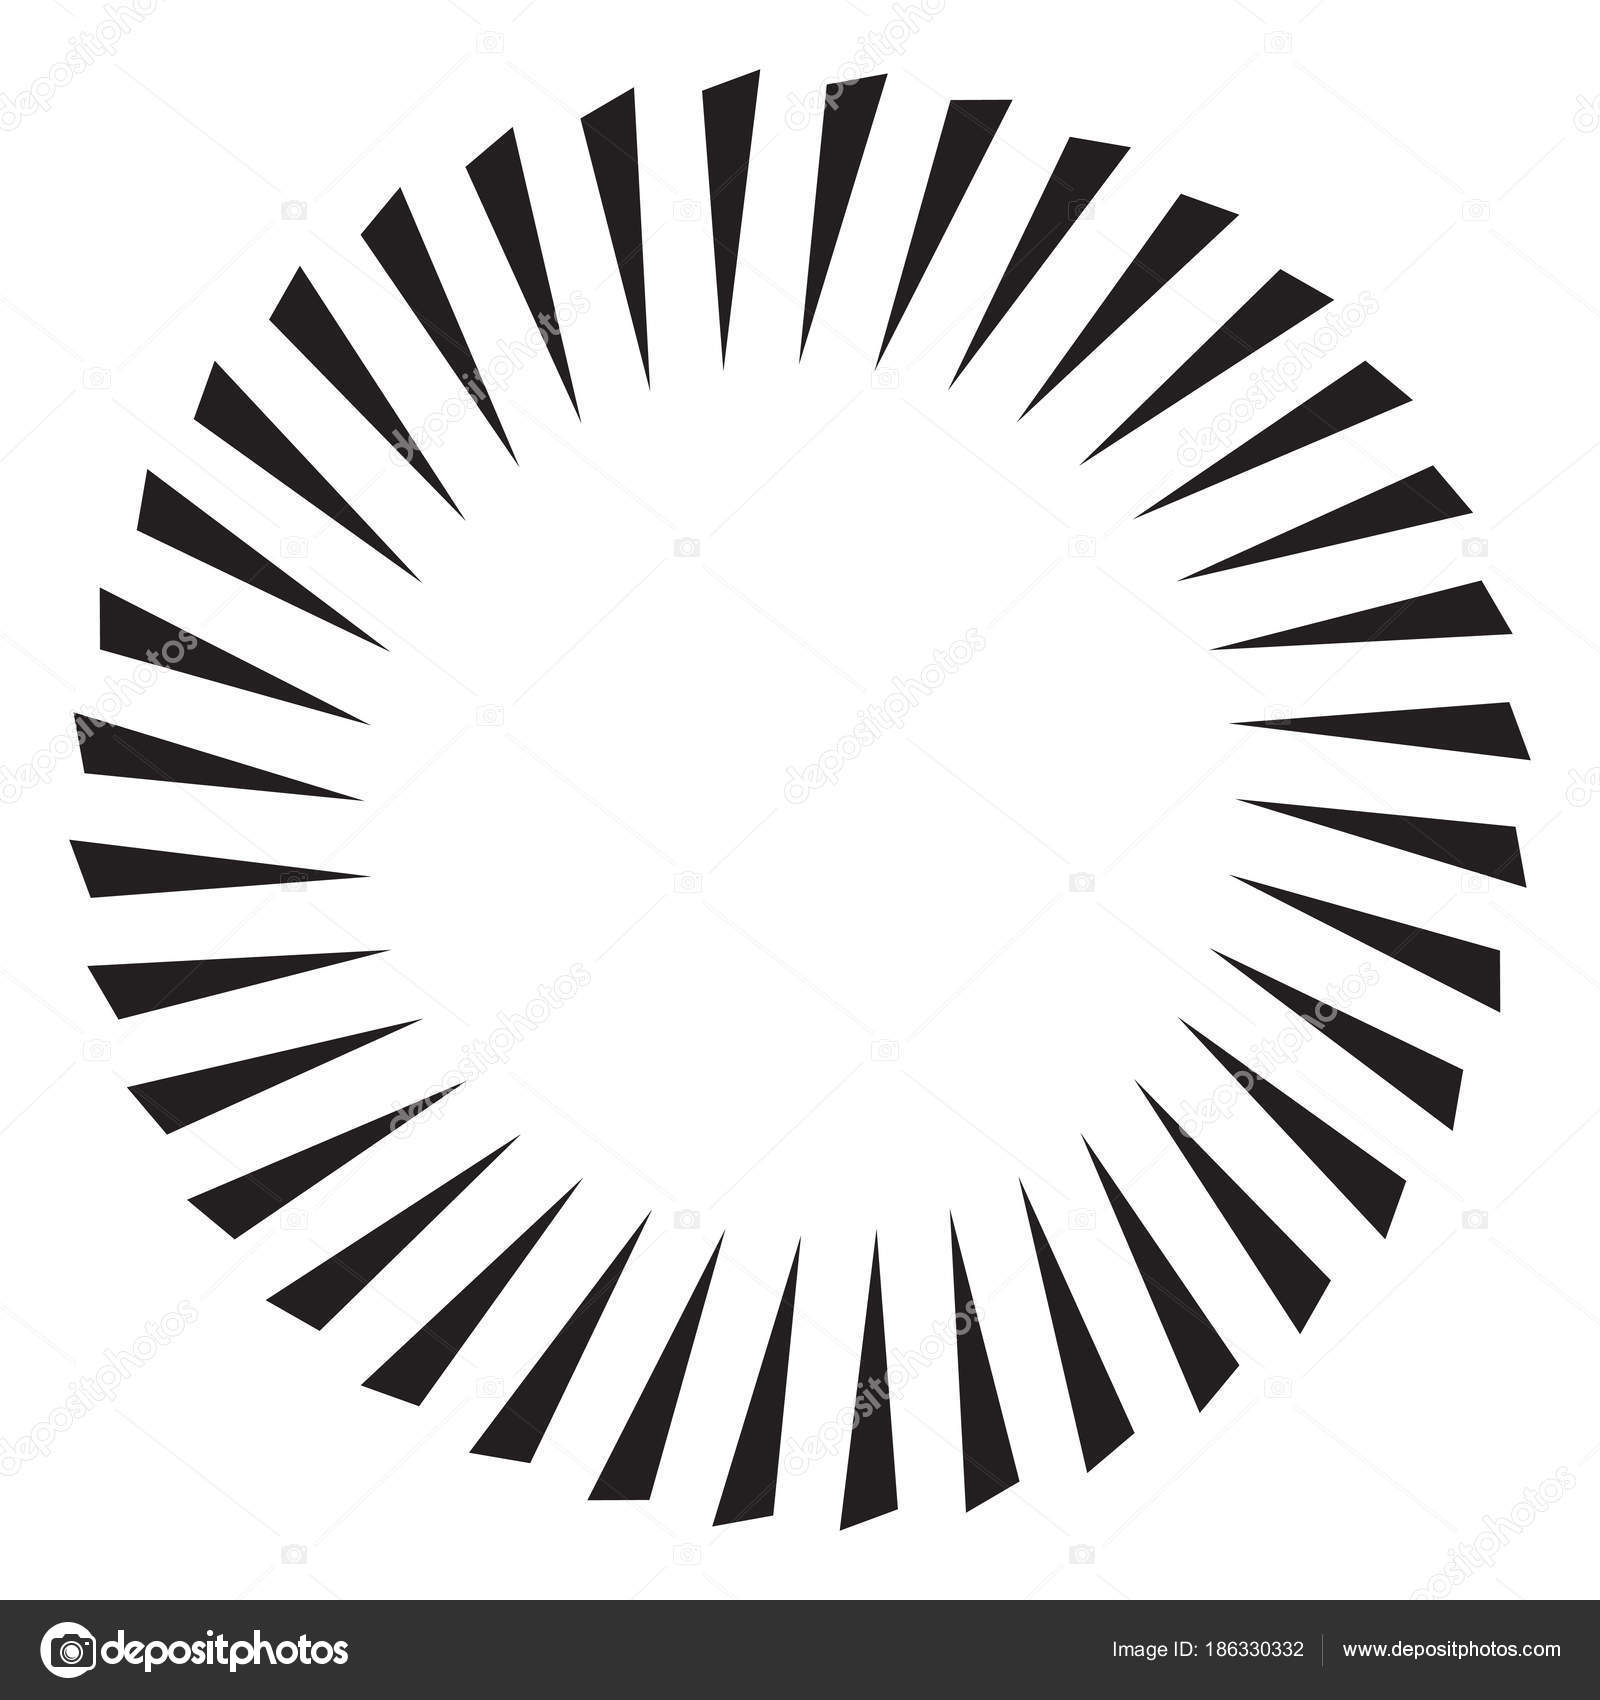 Black and white sun vector icon star pictograph speed line fast motion background vector by